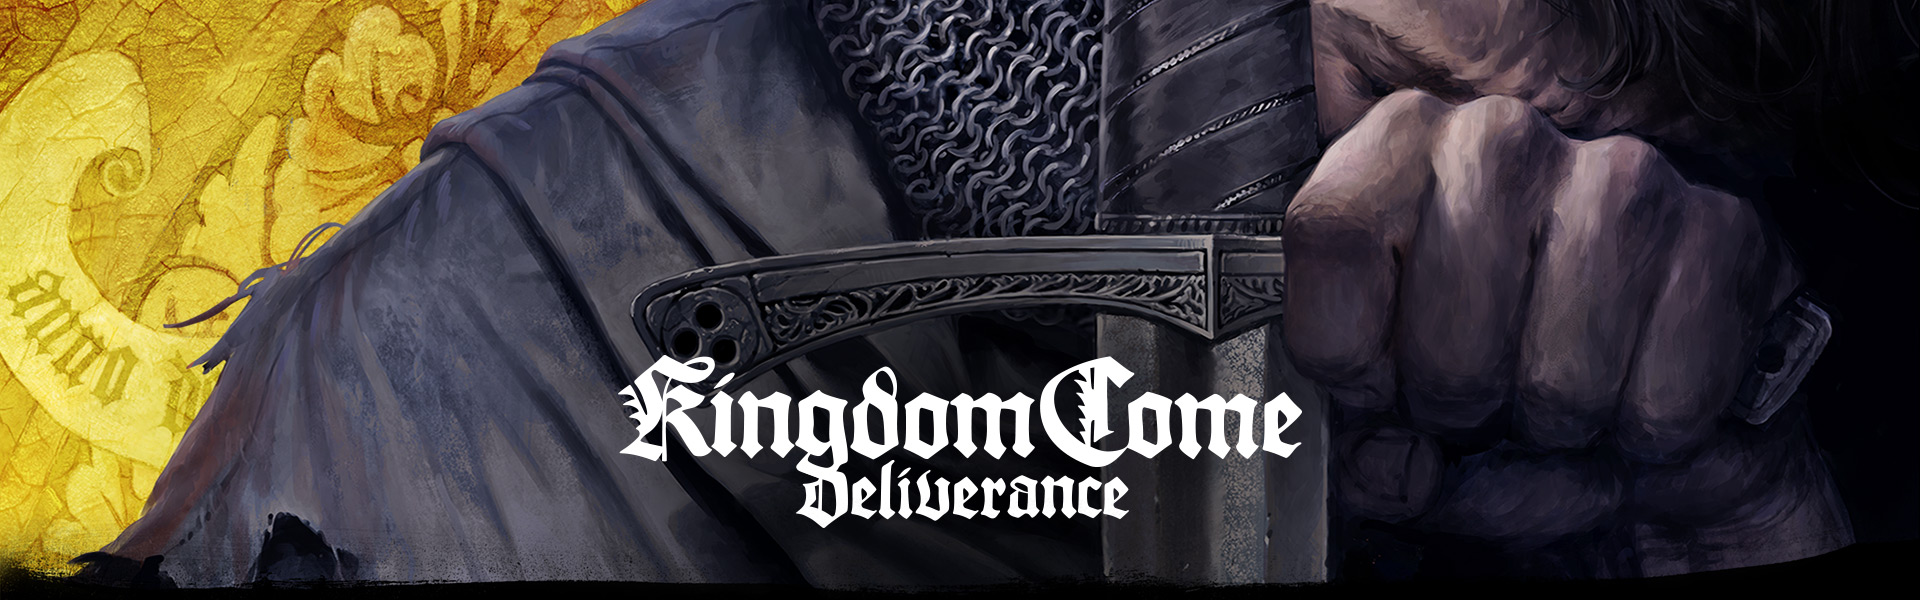 Kingdom Come: Deliverance (Close up of man's face as he kneels behind his sword)